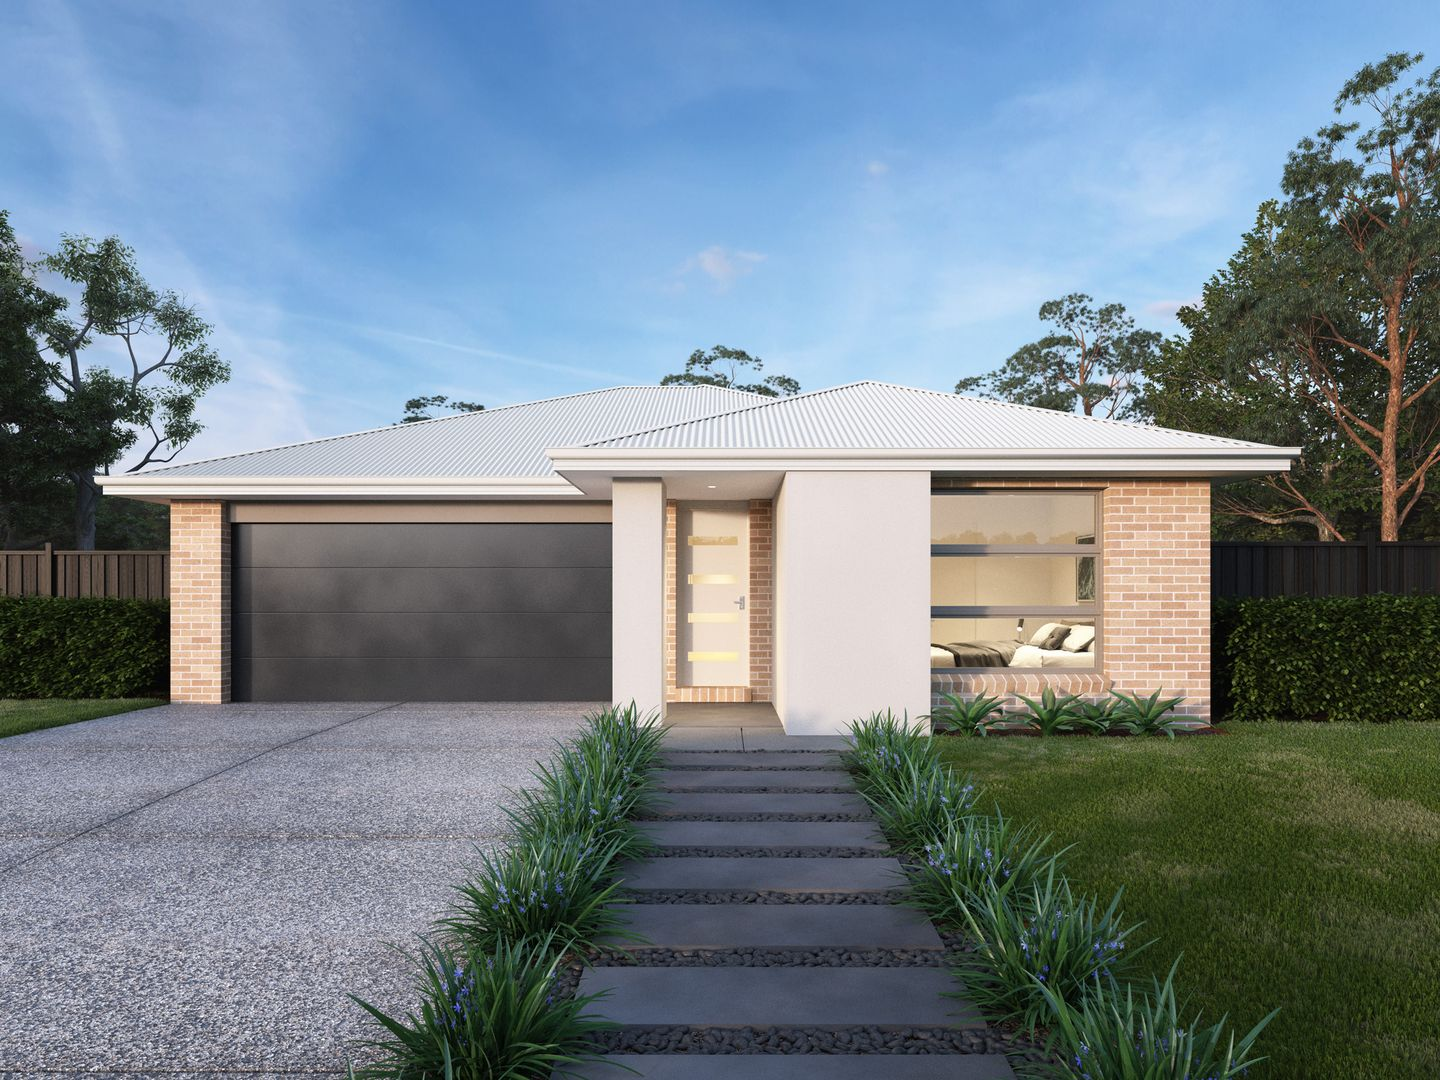 Lot 3034 Bluegrass Way, Diggers Rest VIC 3427, Image 0